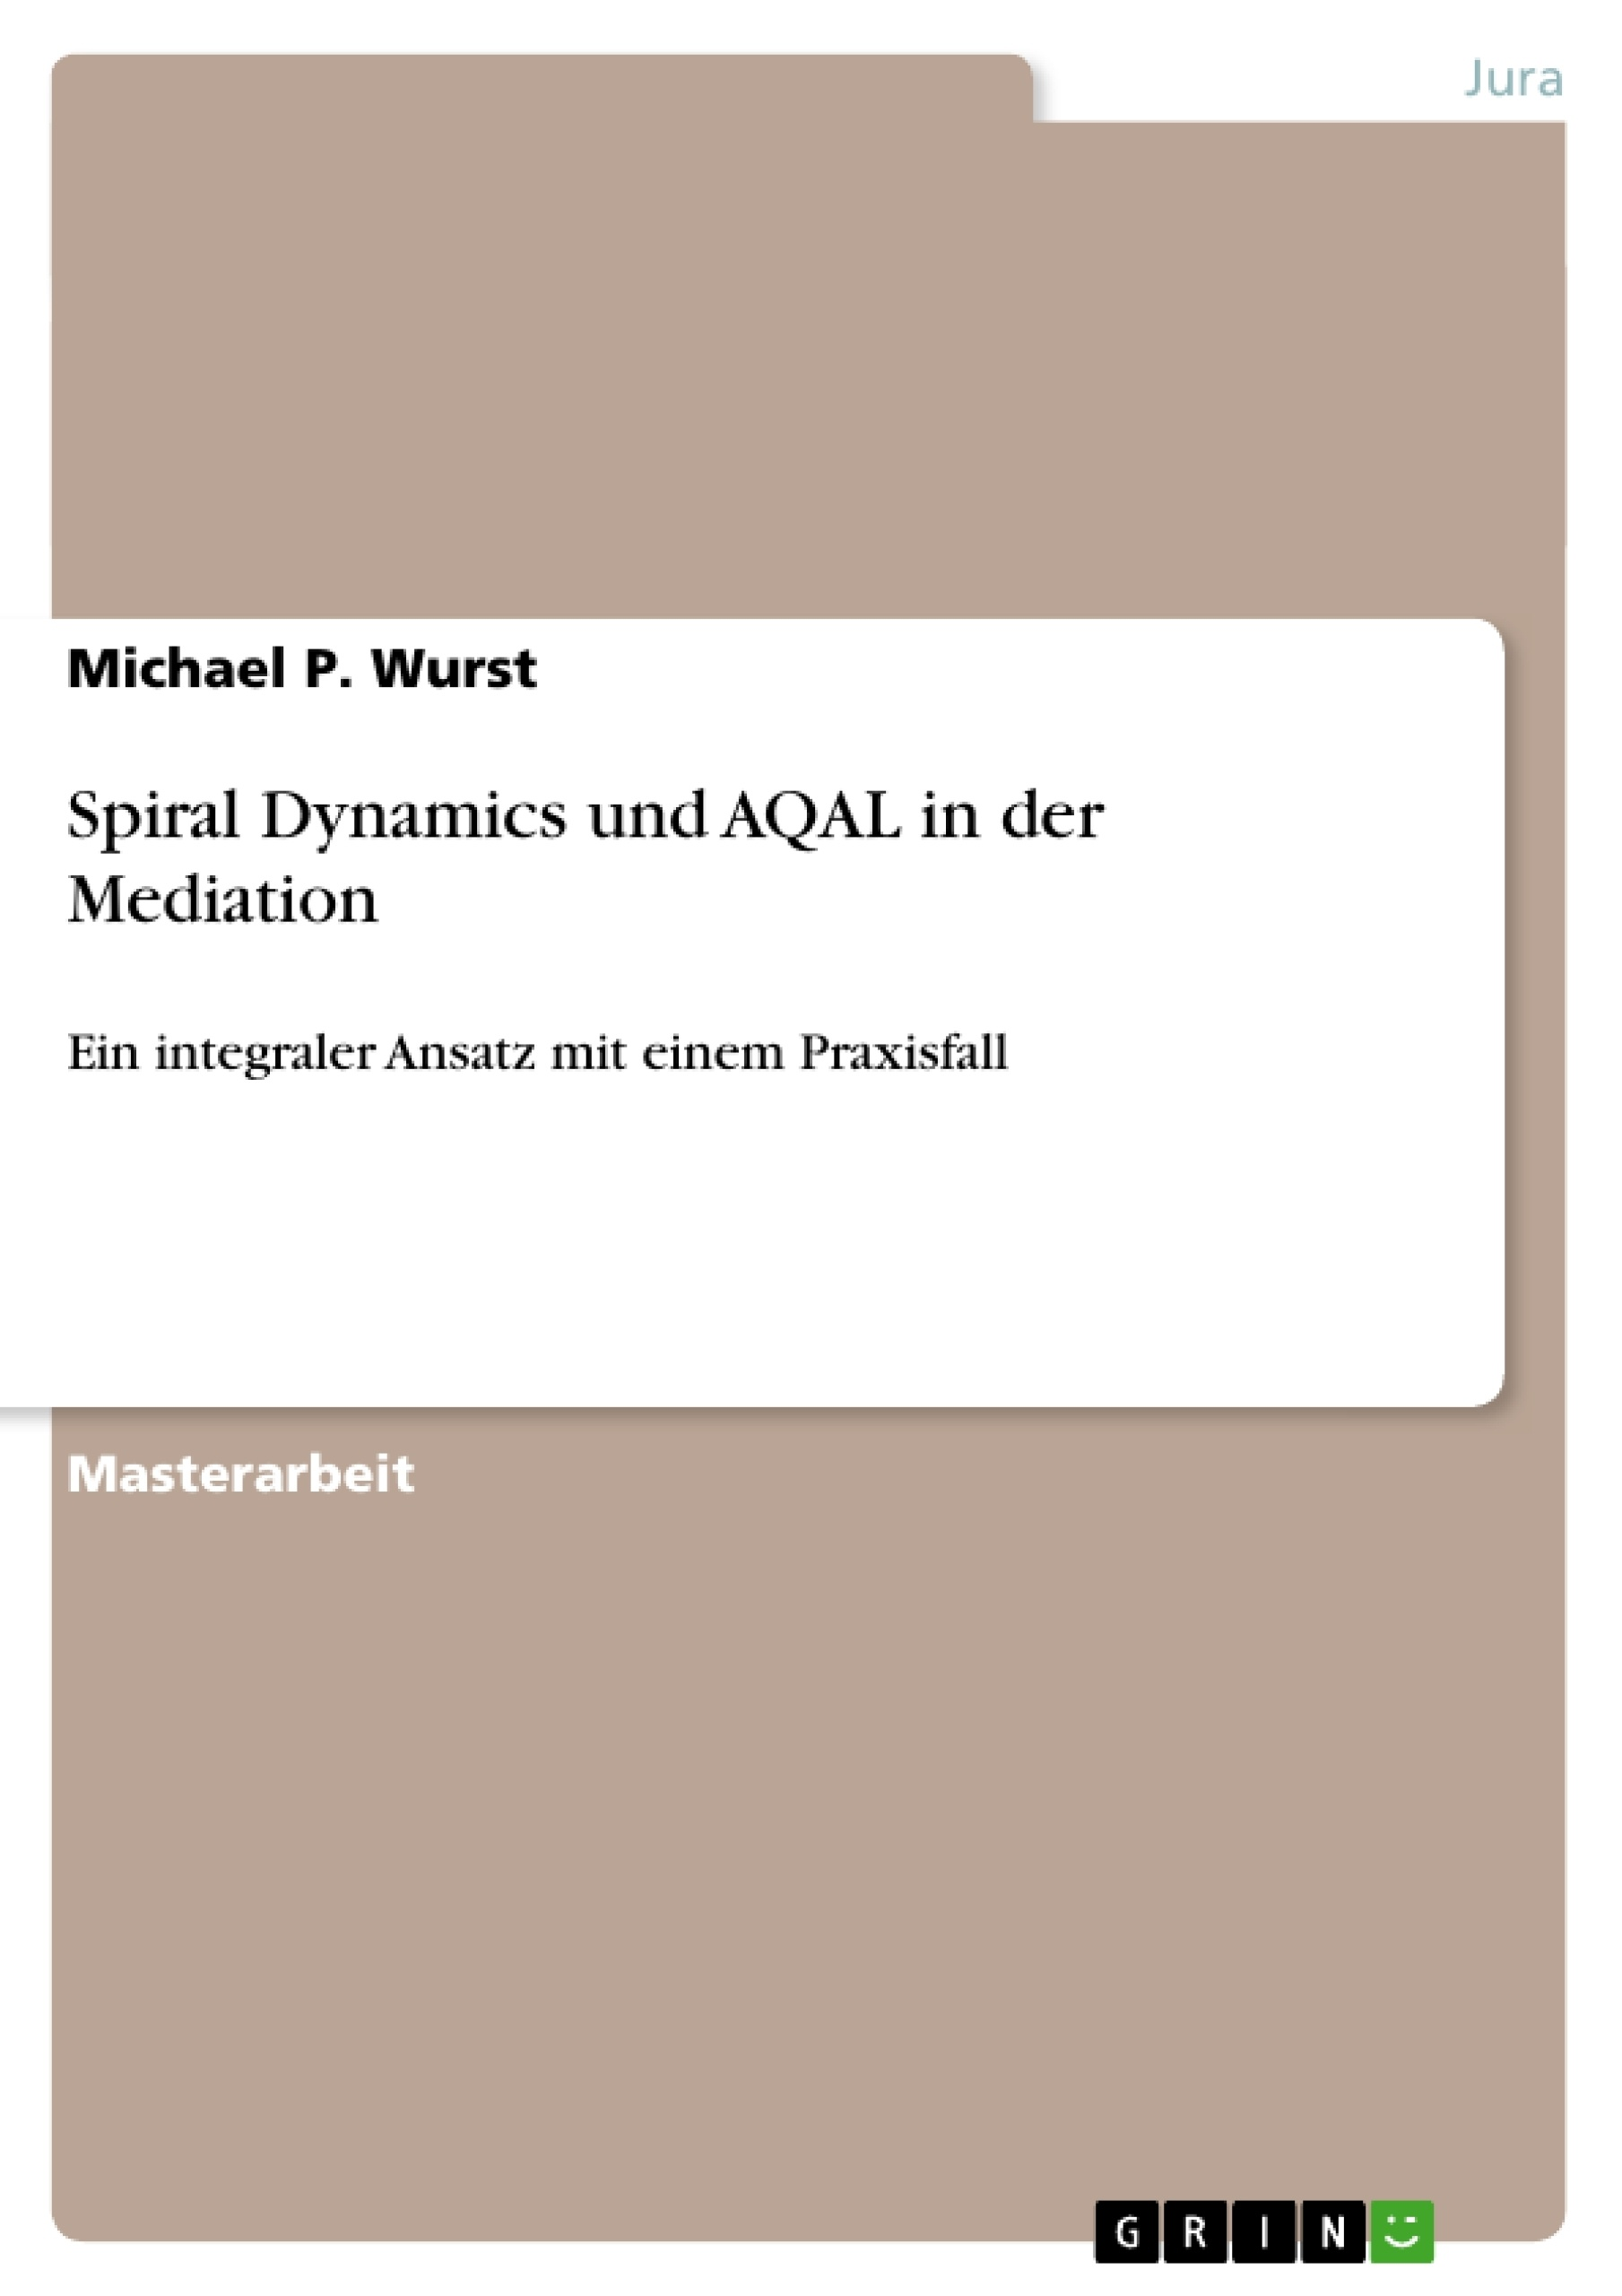 Titel: Spiral Dynamics und AQAL in der Mediation